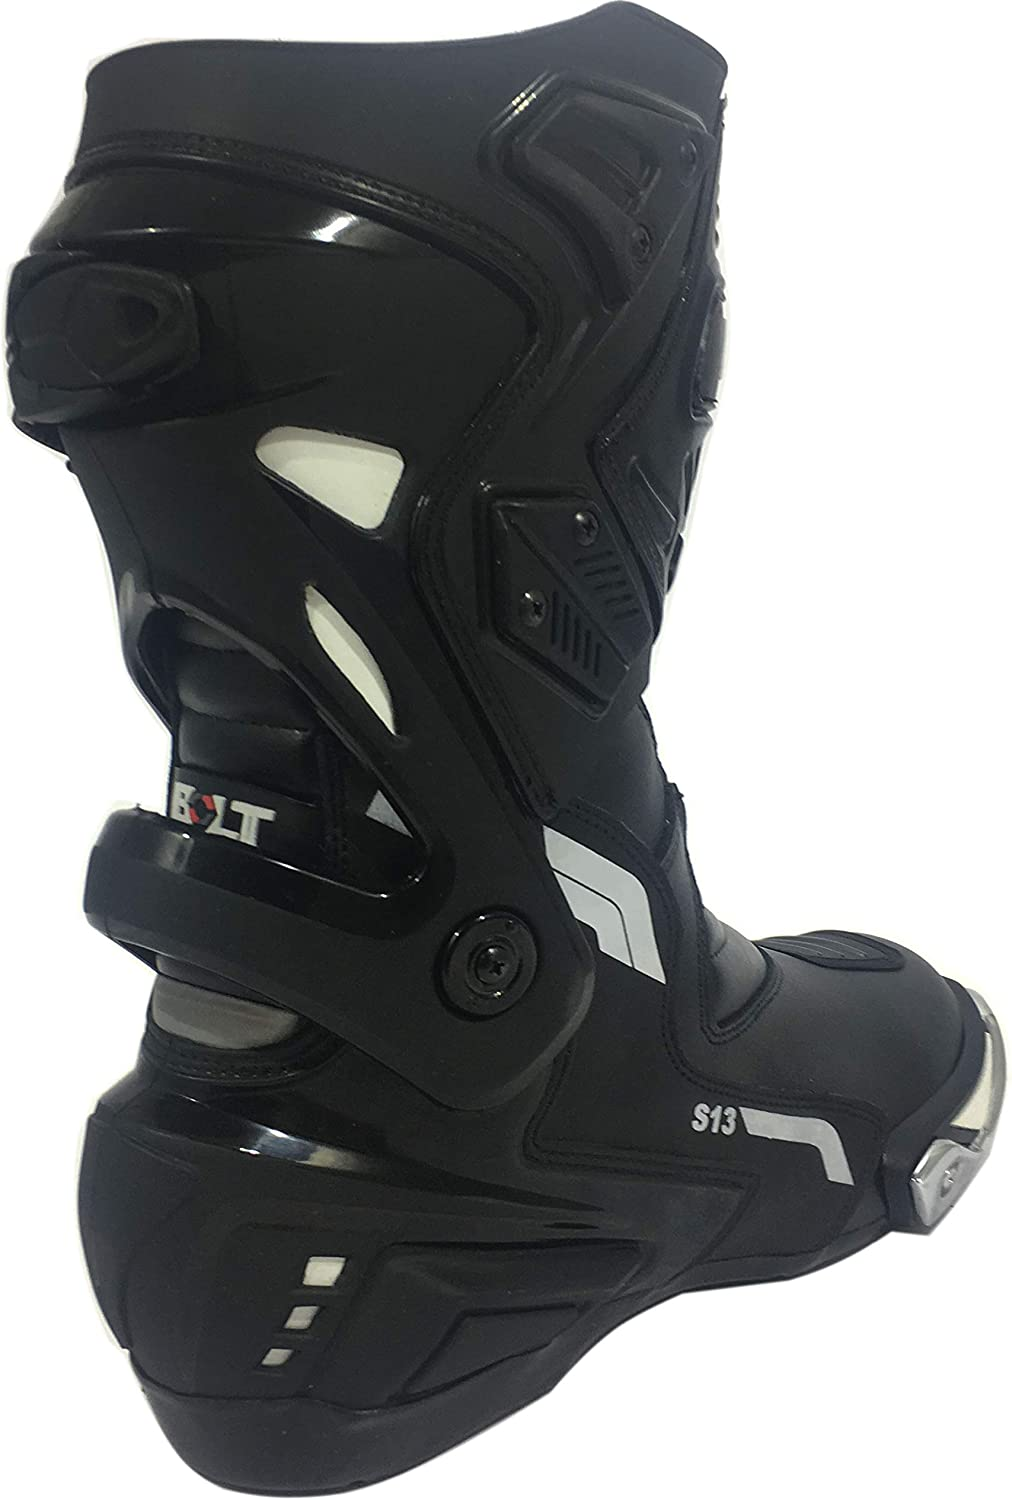 EU 44 VIPER RIDER Bolt S13 Motorbike Motorcycle Leather Touring Sports Racing Waterproof Boots Black